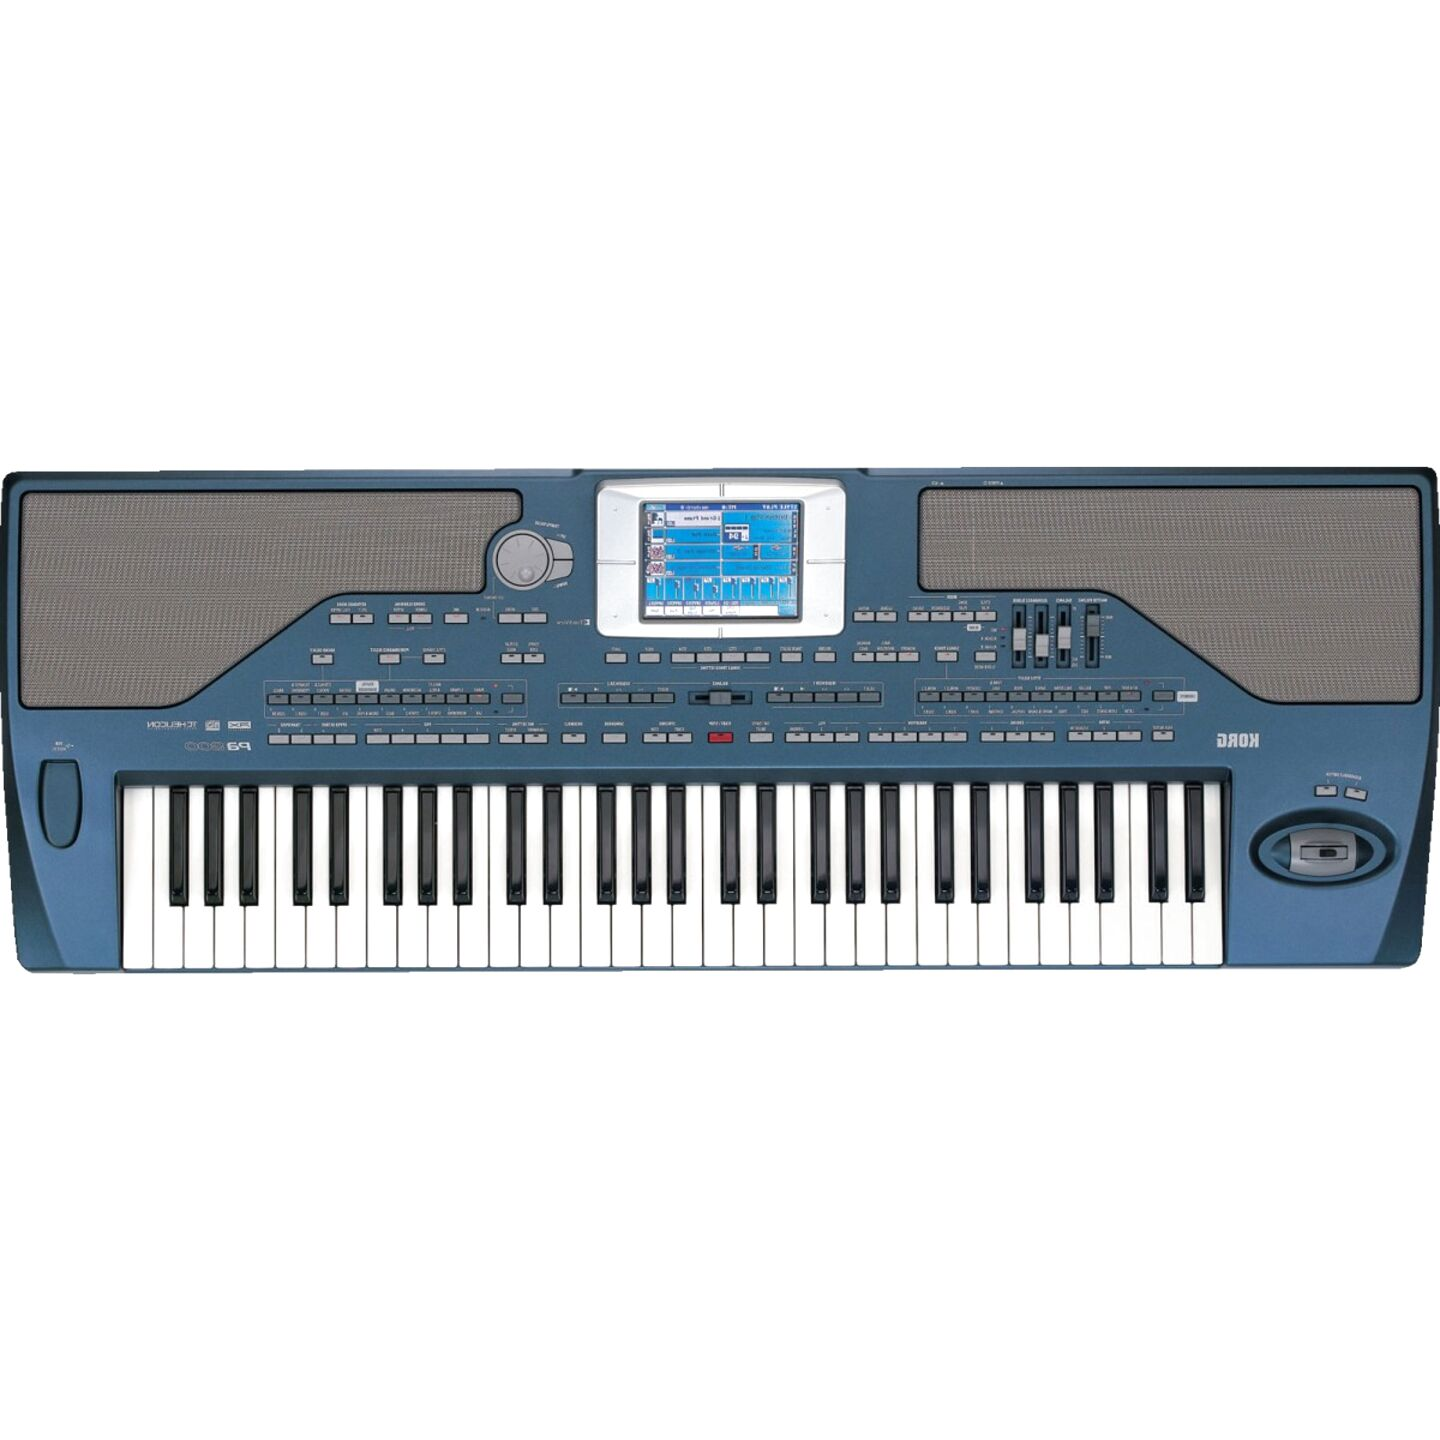 korg pa 800 for sale